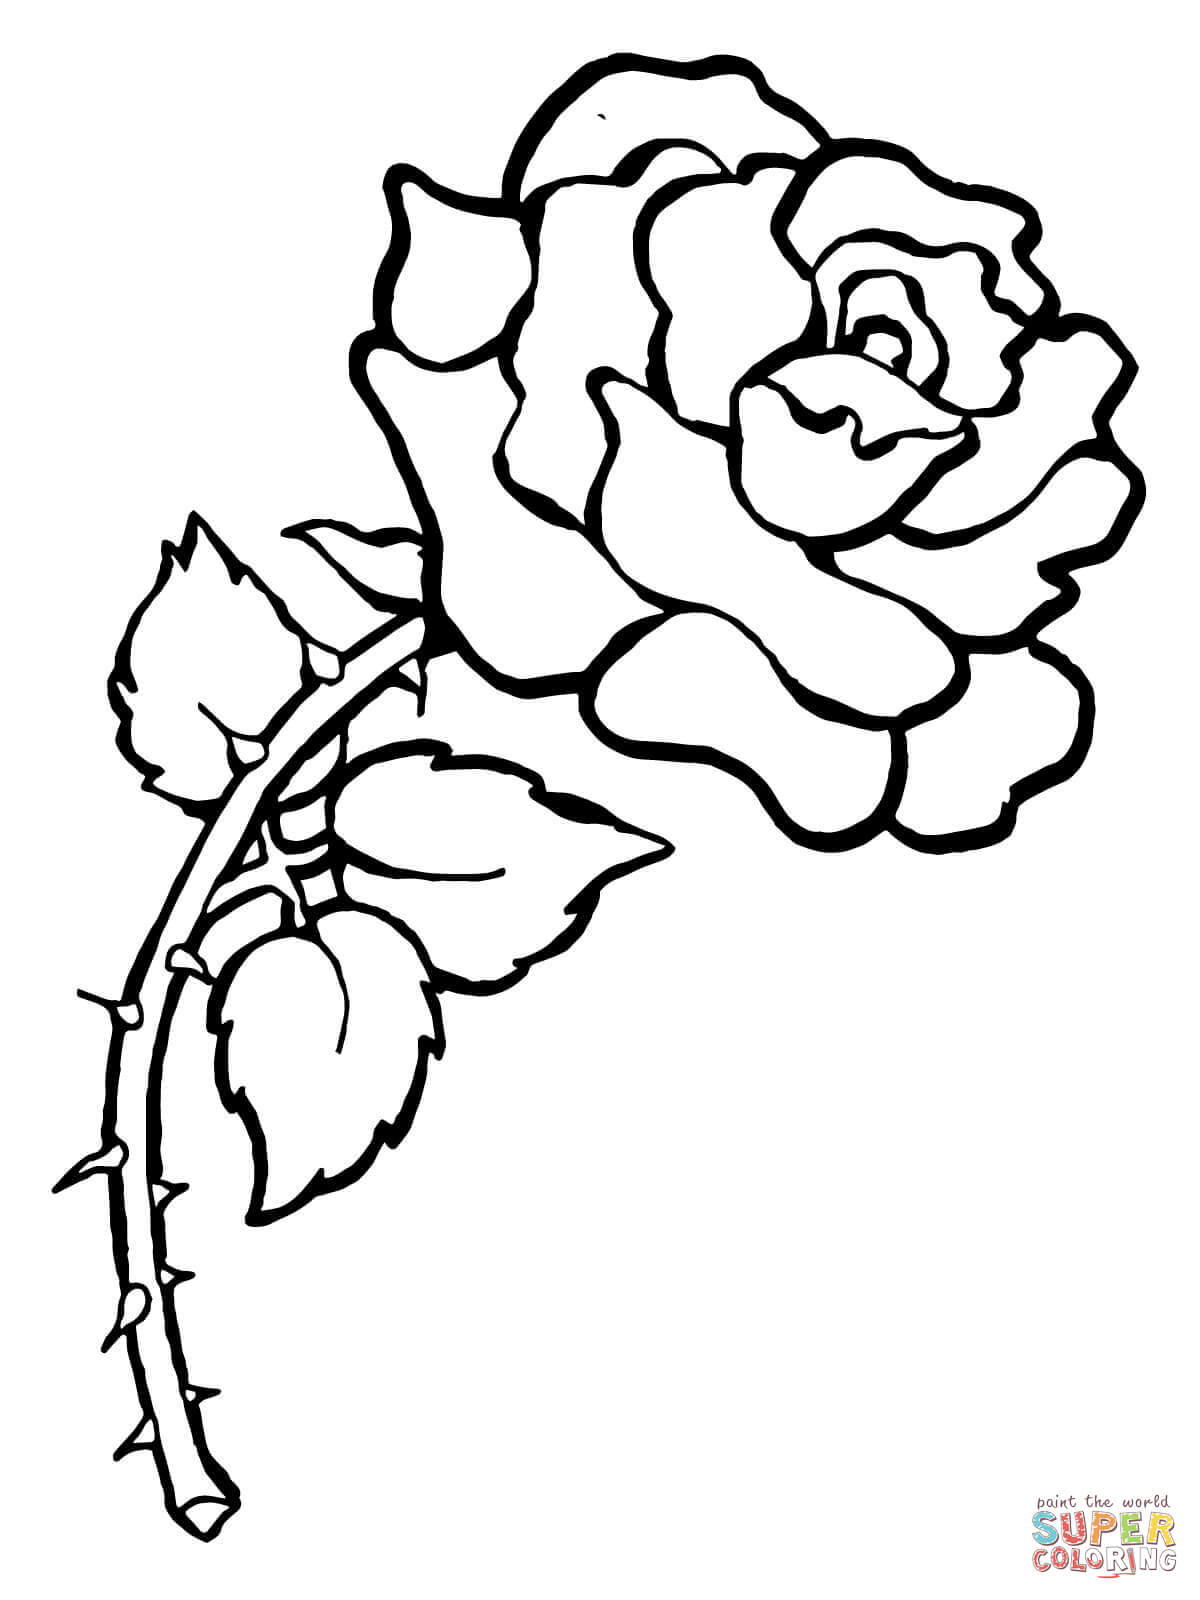 Drawn rose bush thorn outline Coloring Click Free coloring the